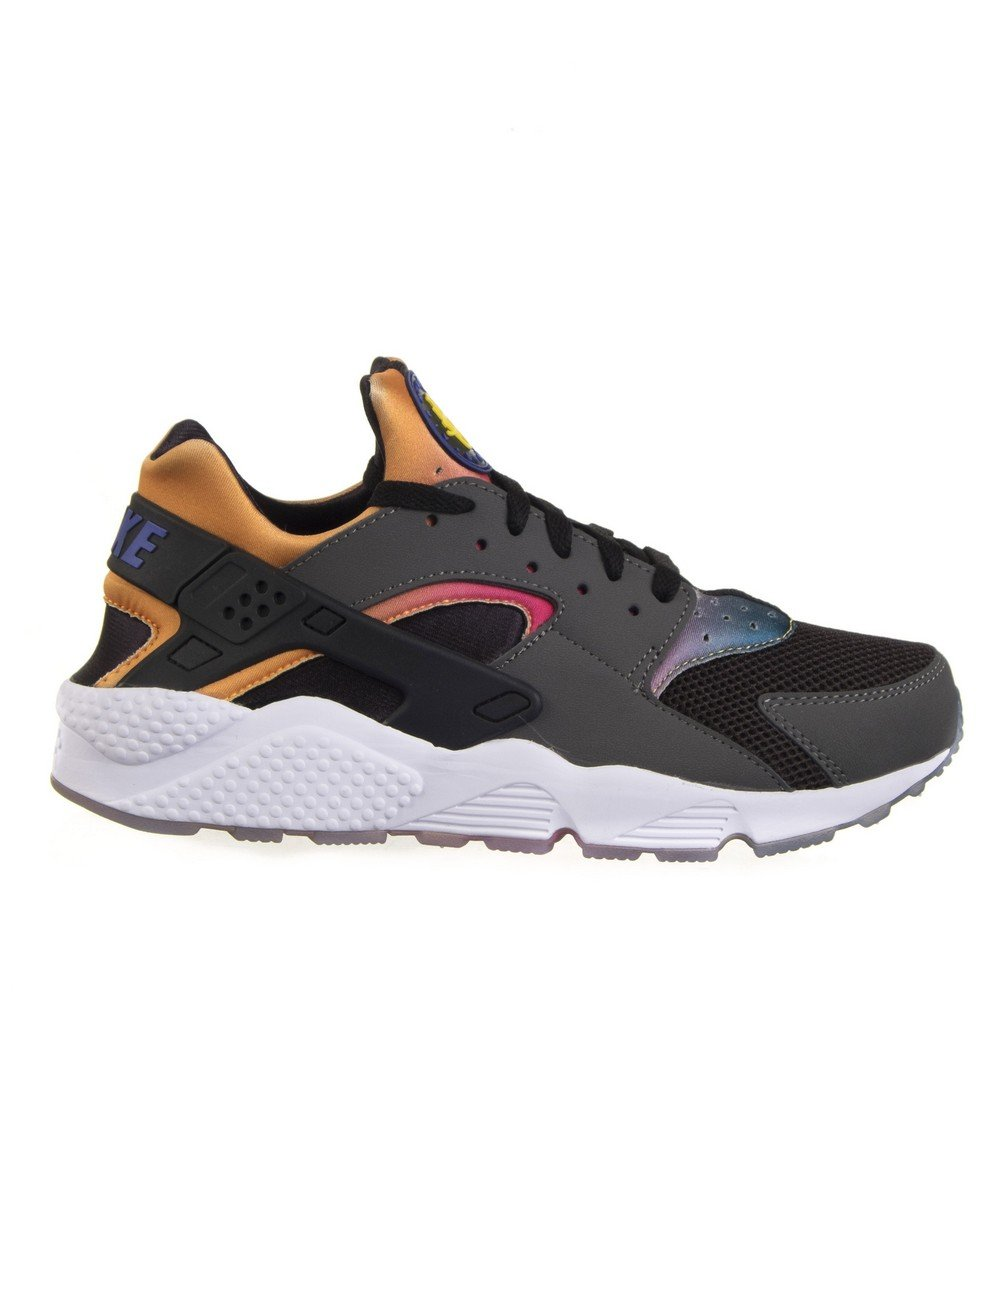 nike air huarache run sd shoes black prism violet trainers from iconsume uk. Black Bedroom Furniture Sets. Home Design Ideas